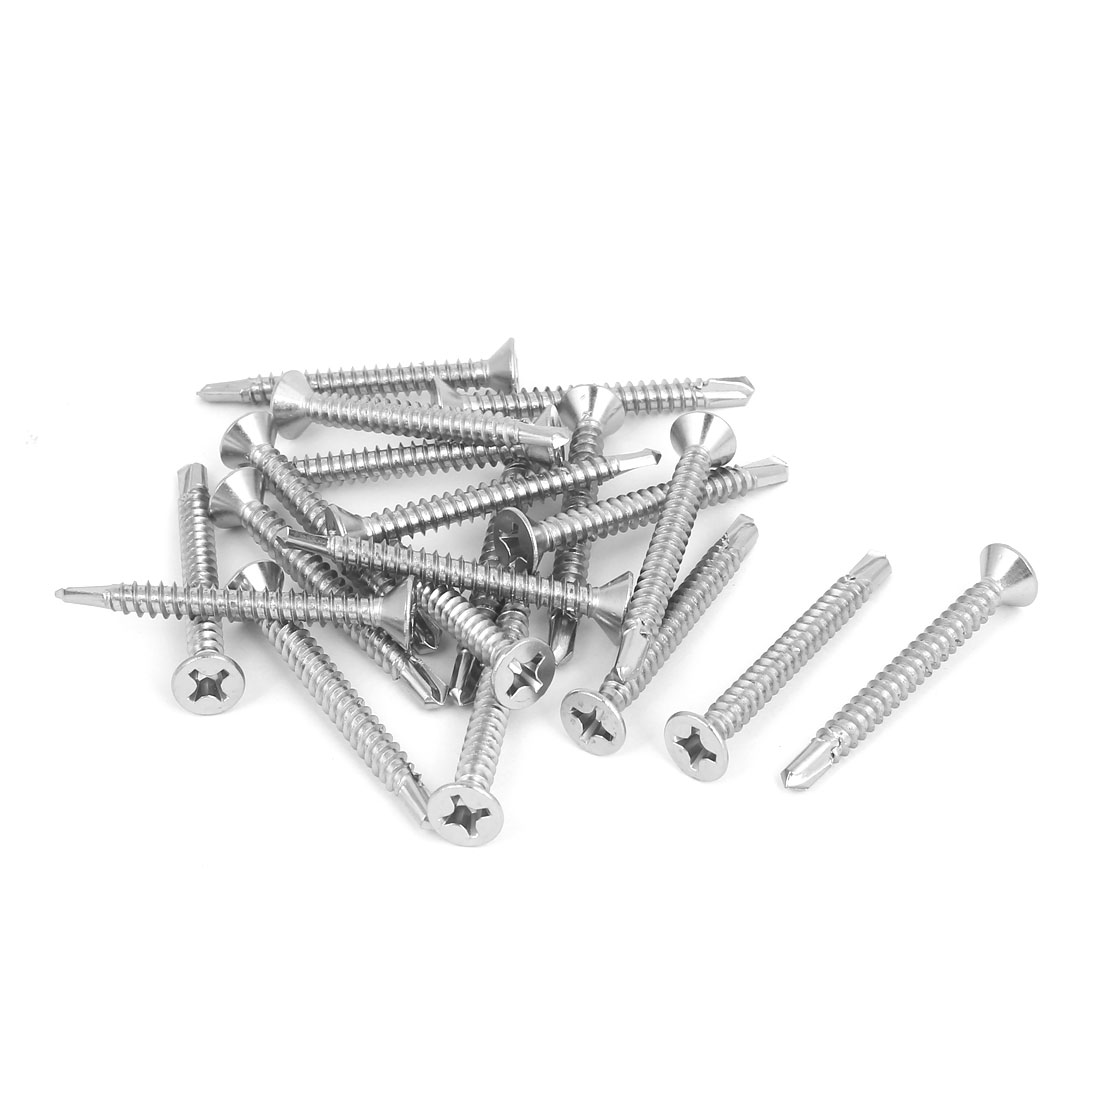 M5.5 x 50mm Phillips Countersunk Head Self Drilling Tek Screws Bolts 20 Pcs